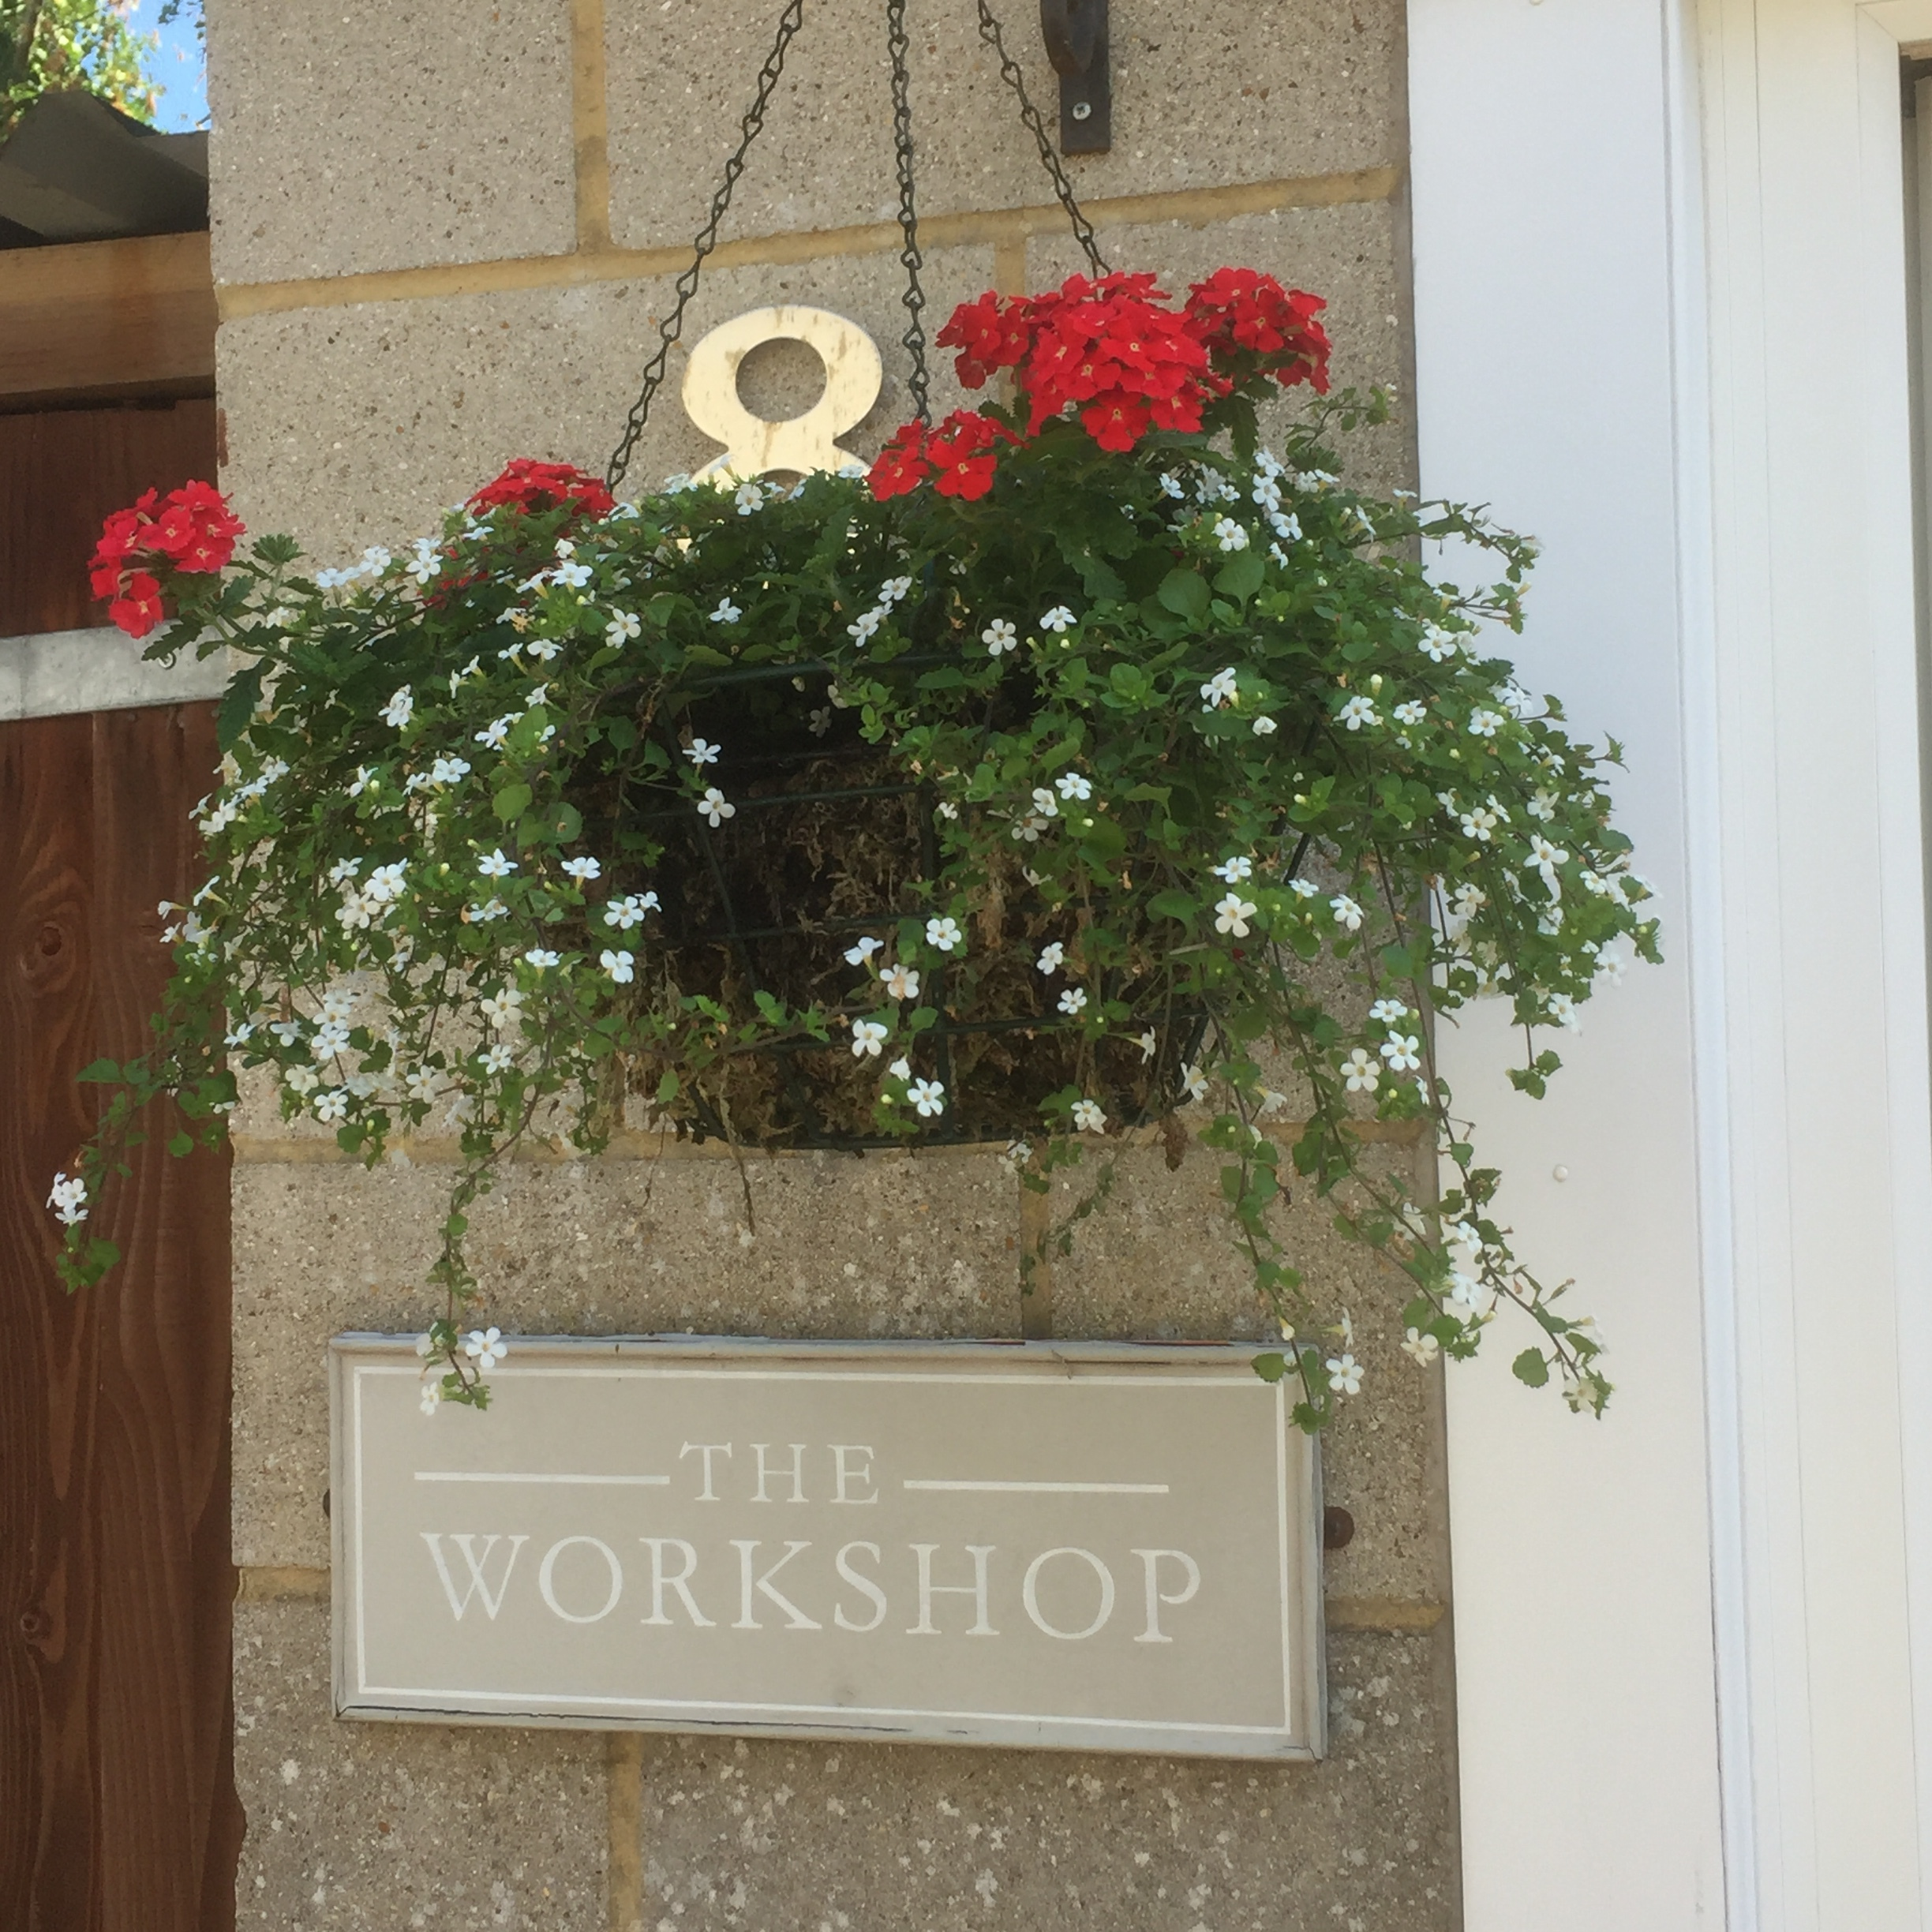 The hanging basket needs watering twice a day at the moment.